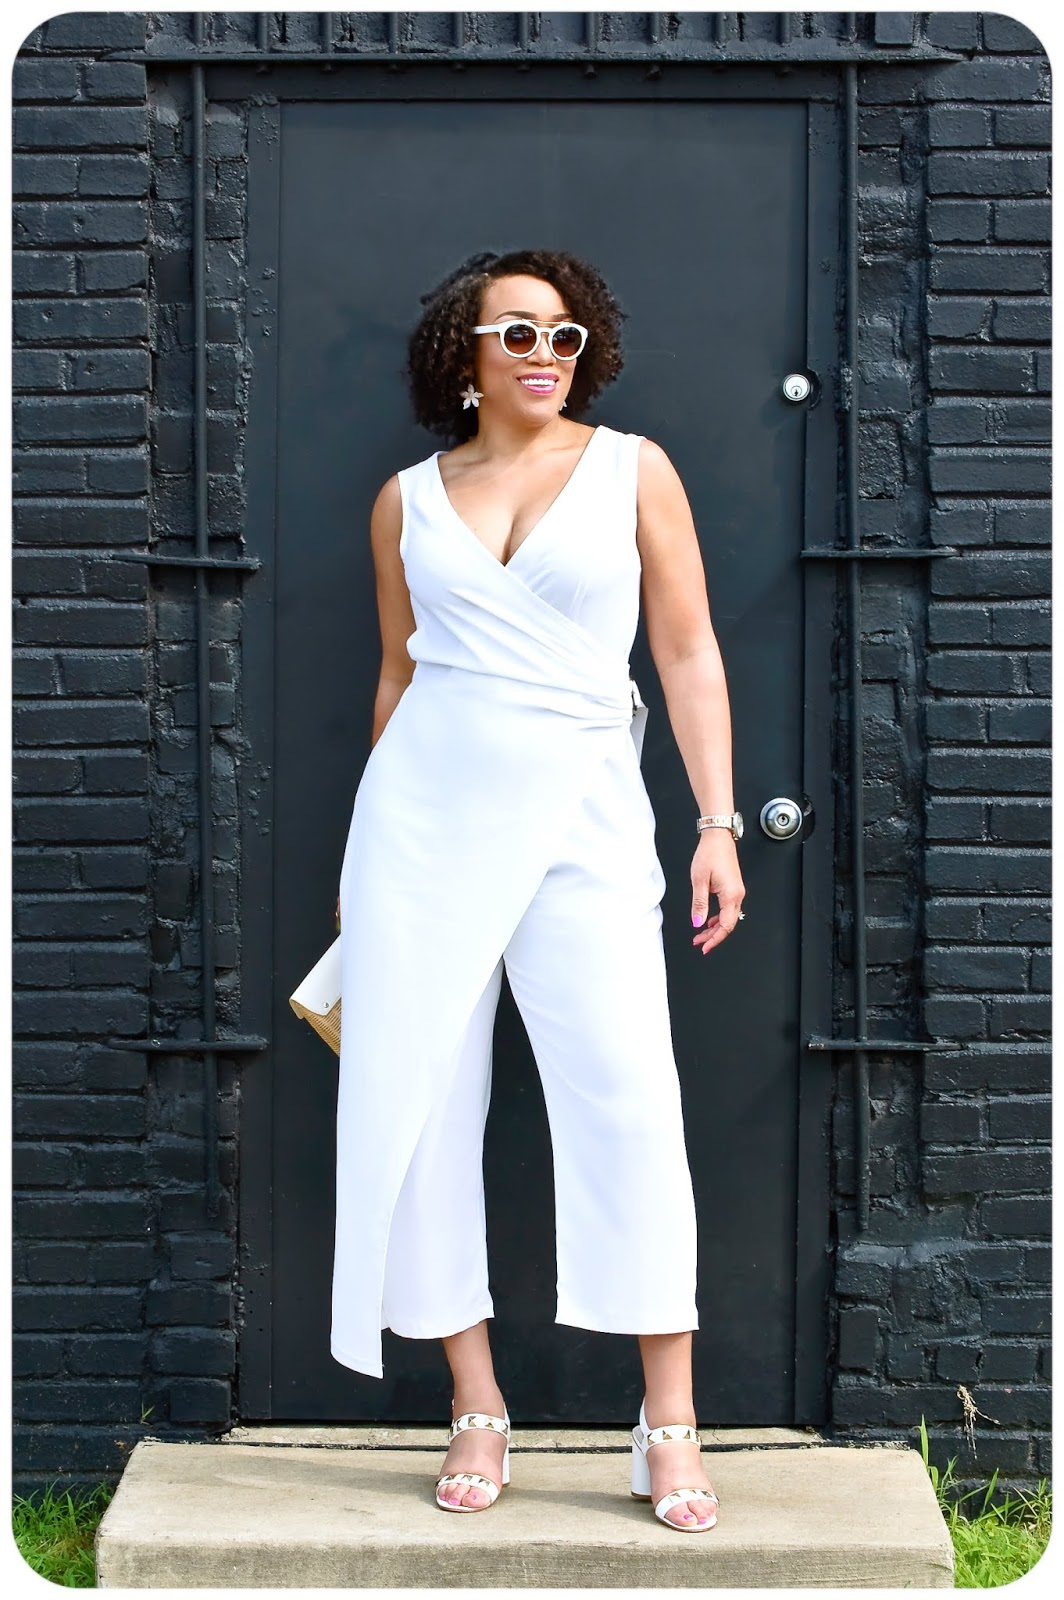 McCall's 7953 - White Crepe Wrap Jumpsuit - Erica Bunker DIY Style!